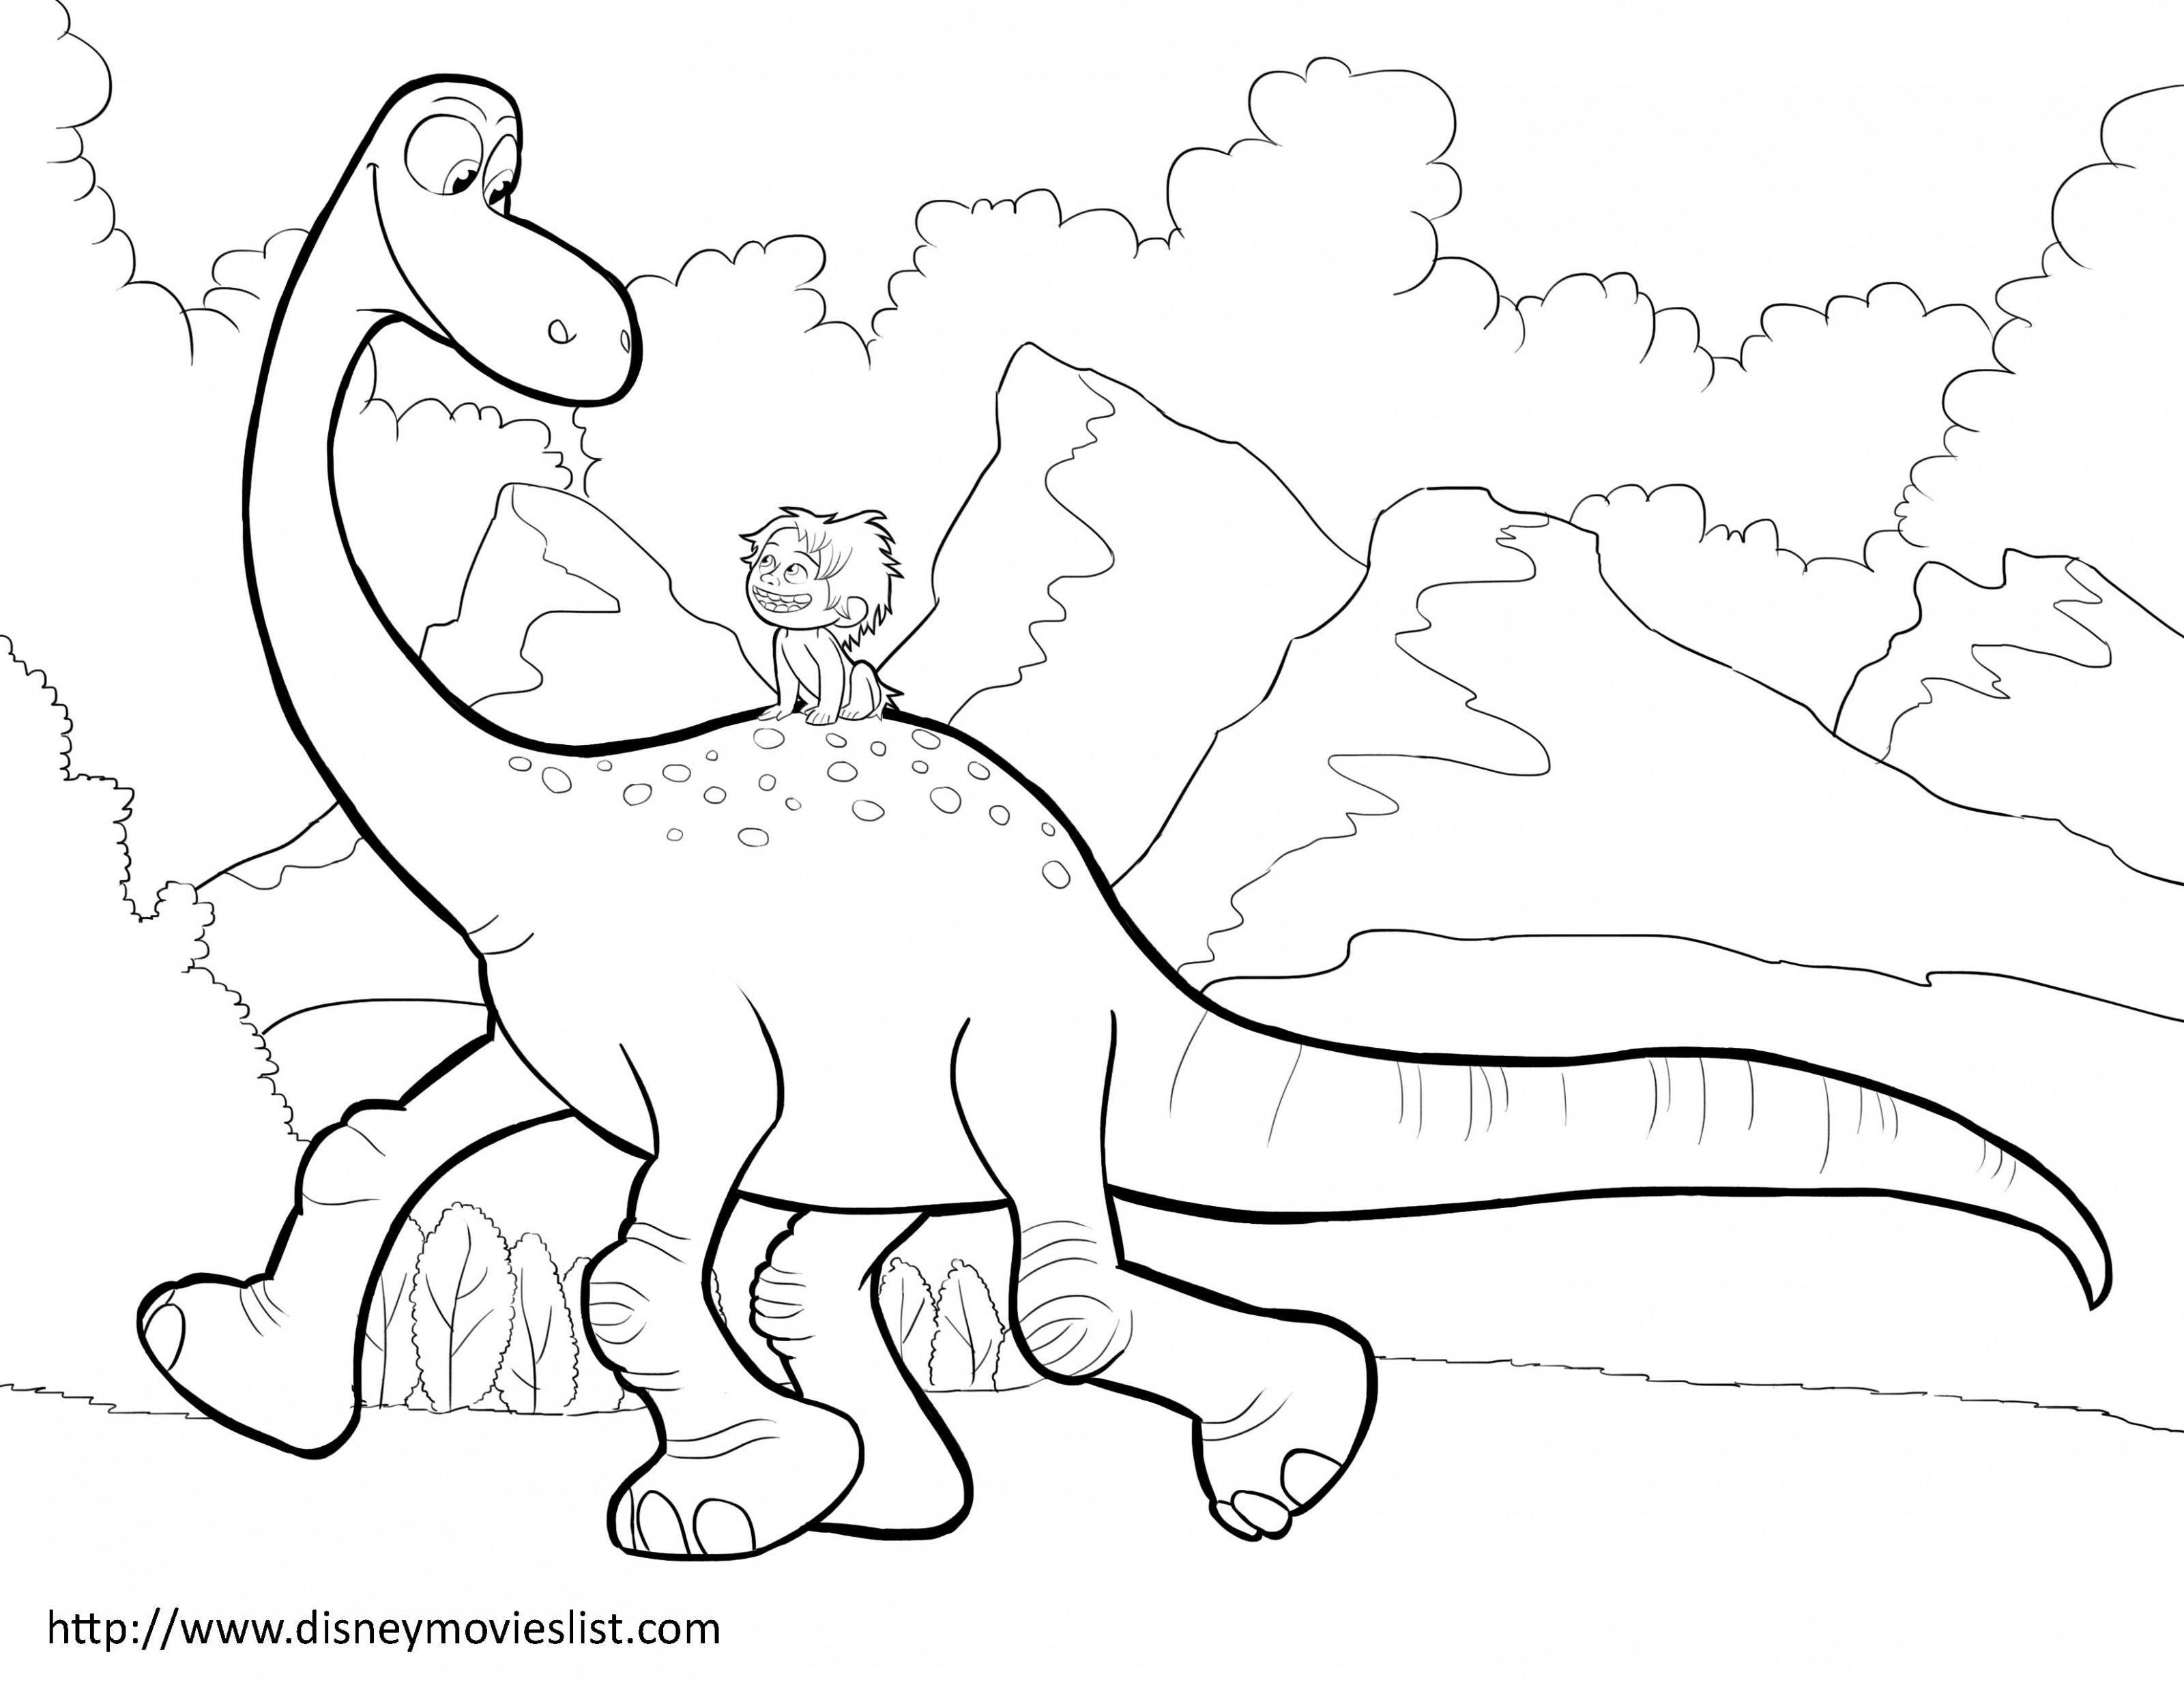 Pin by Christel Orwig on Painting maybe's | Dinosaur coloring pages ...